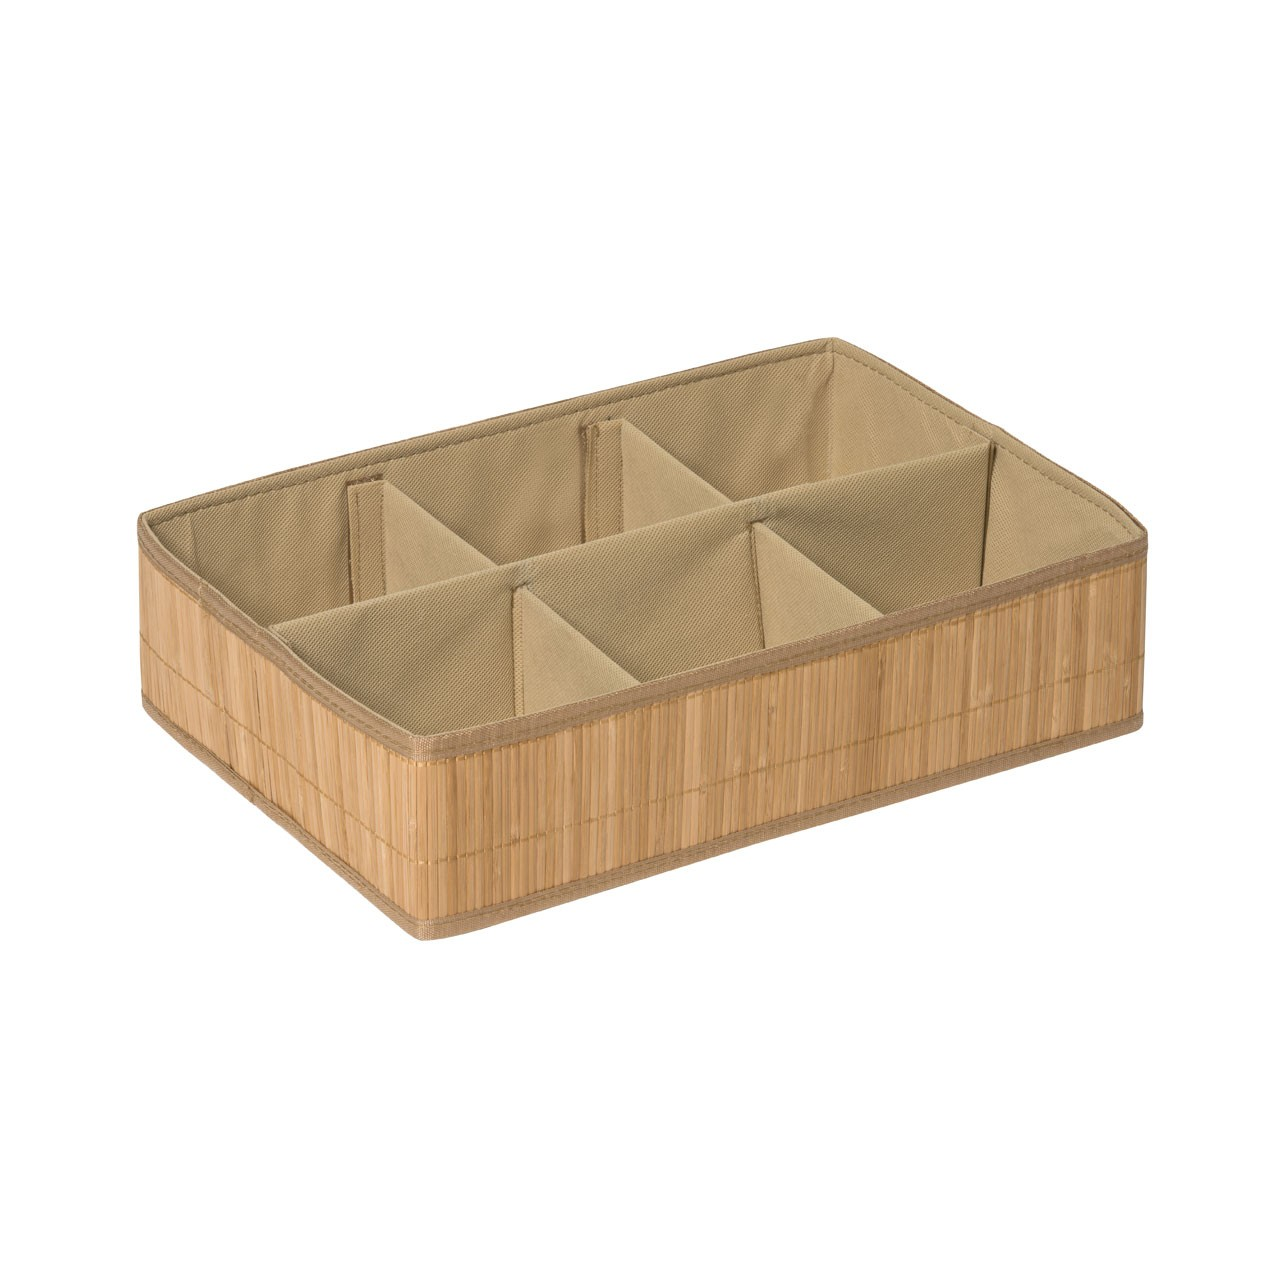 Prime Furnishing Kankyo 6 Sections Storage Box - Natural